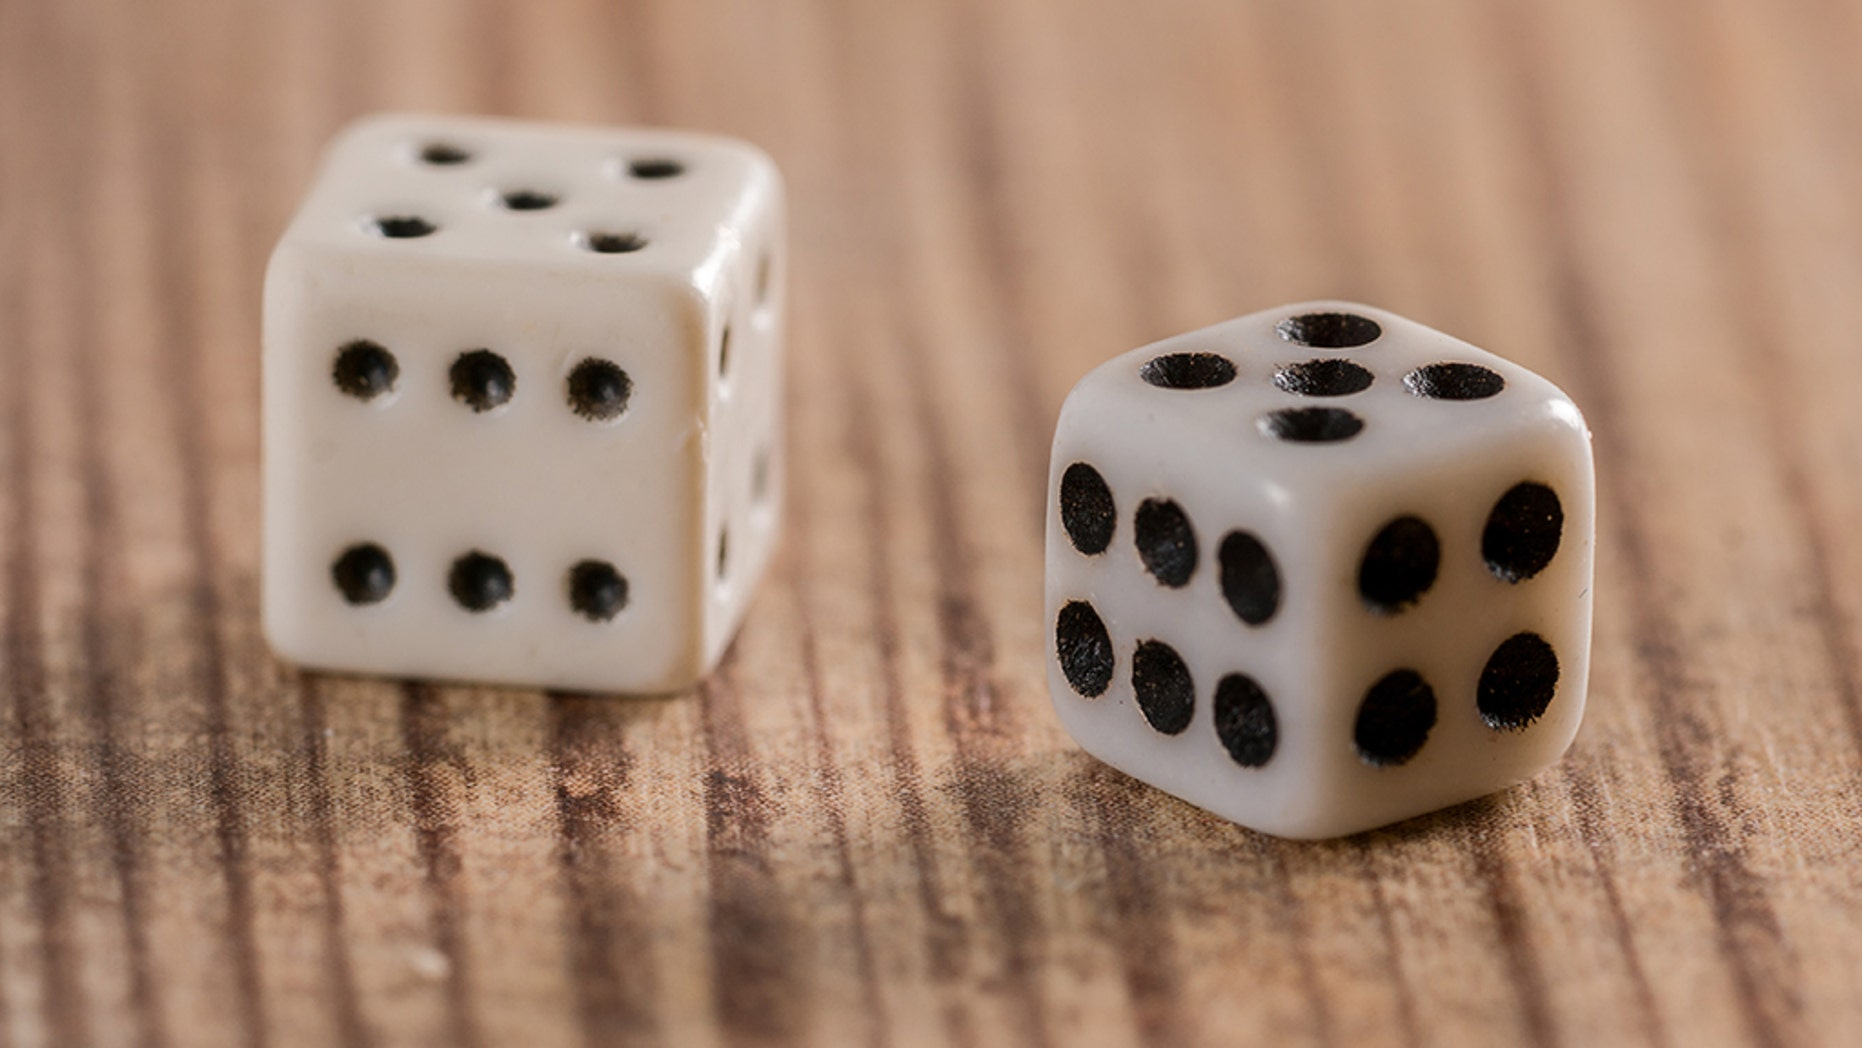 An Arkansas city council election was decided by rolling dice after it resulted in a tie.